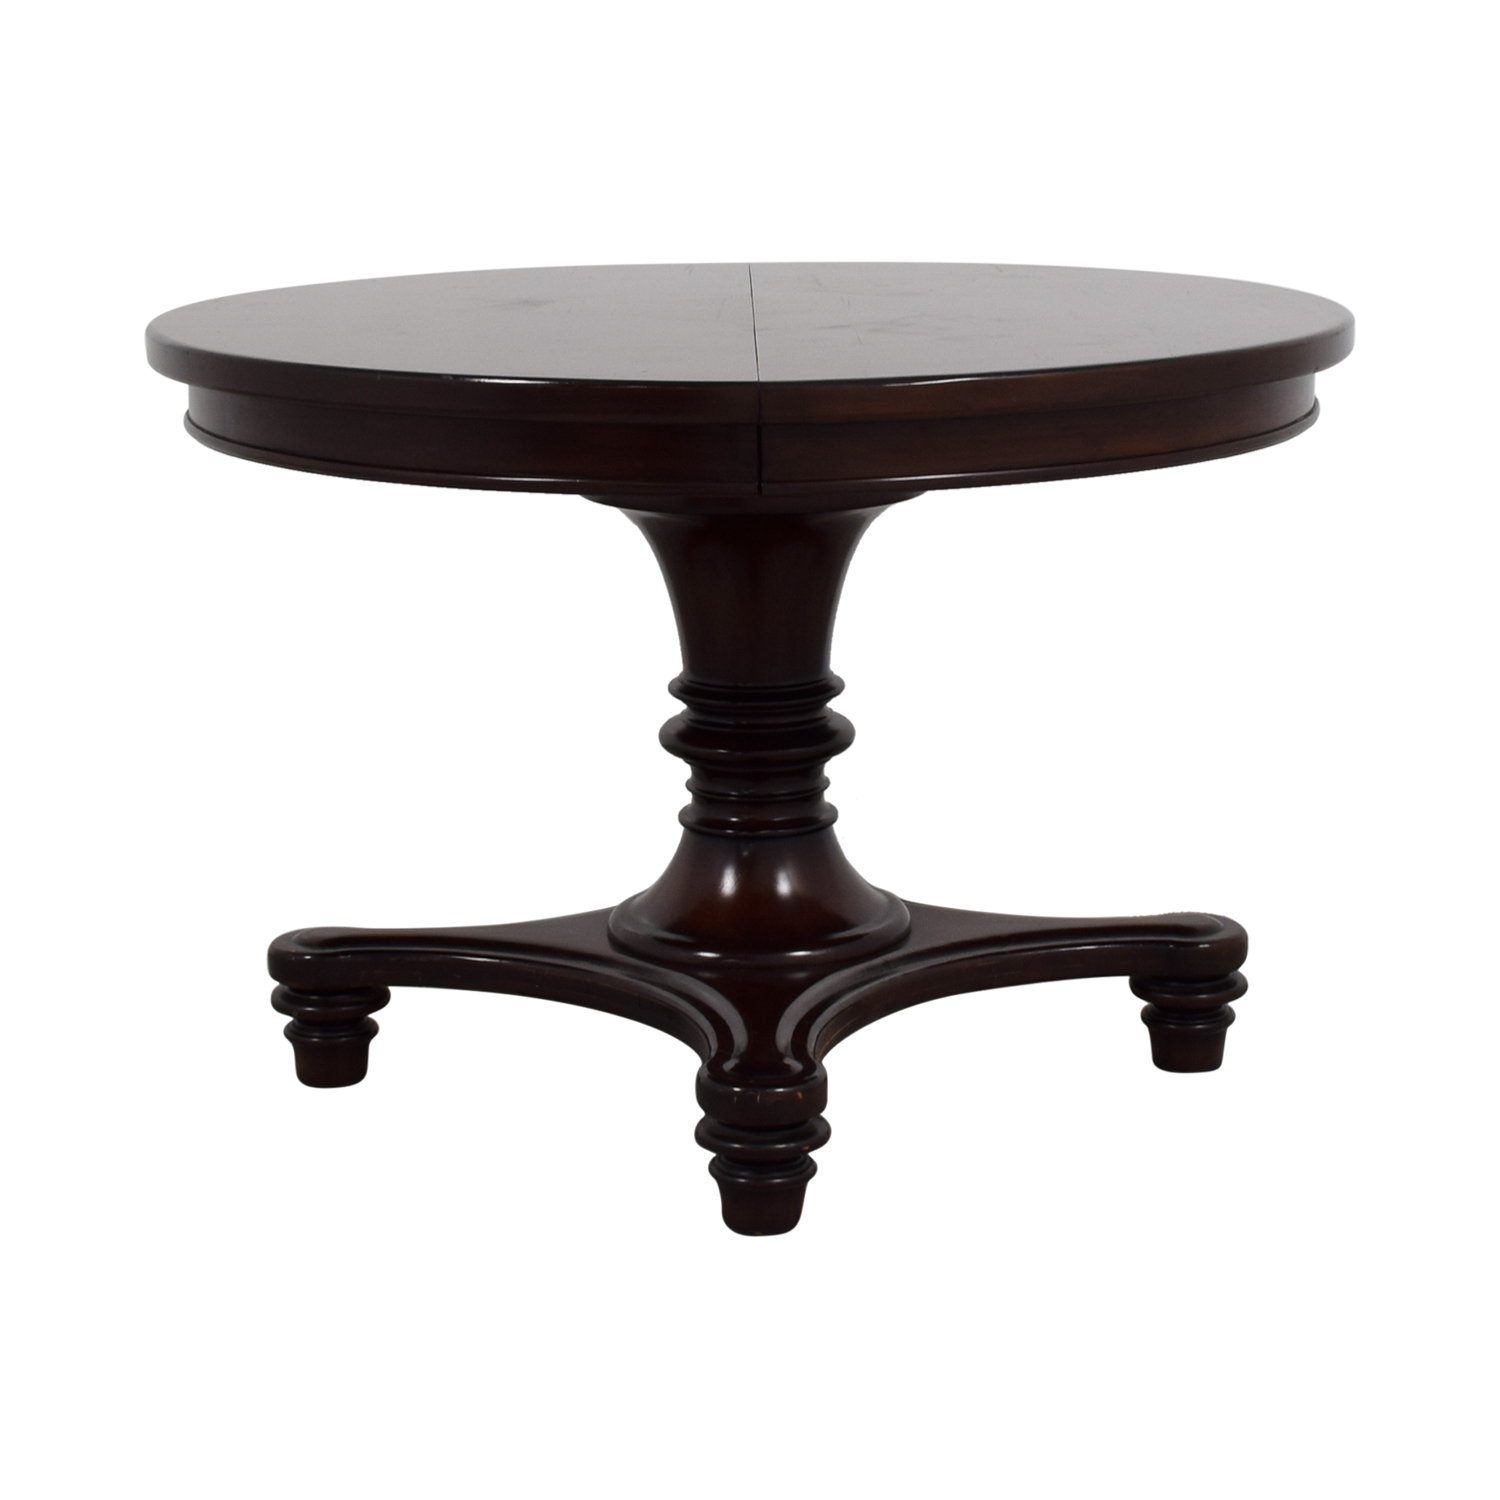 pottery barn sumner round cherry wood table with extension leaf rustic pedestal accent dinner tables king bedroom sets antique dining room centerpieces purple furniture day